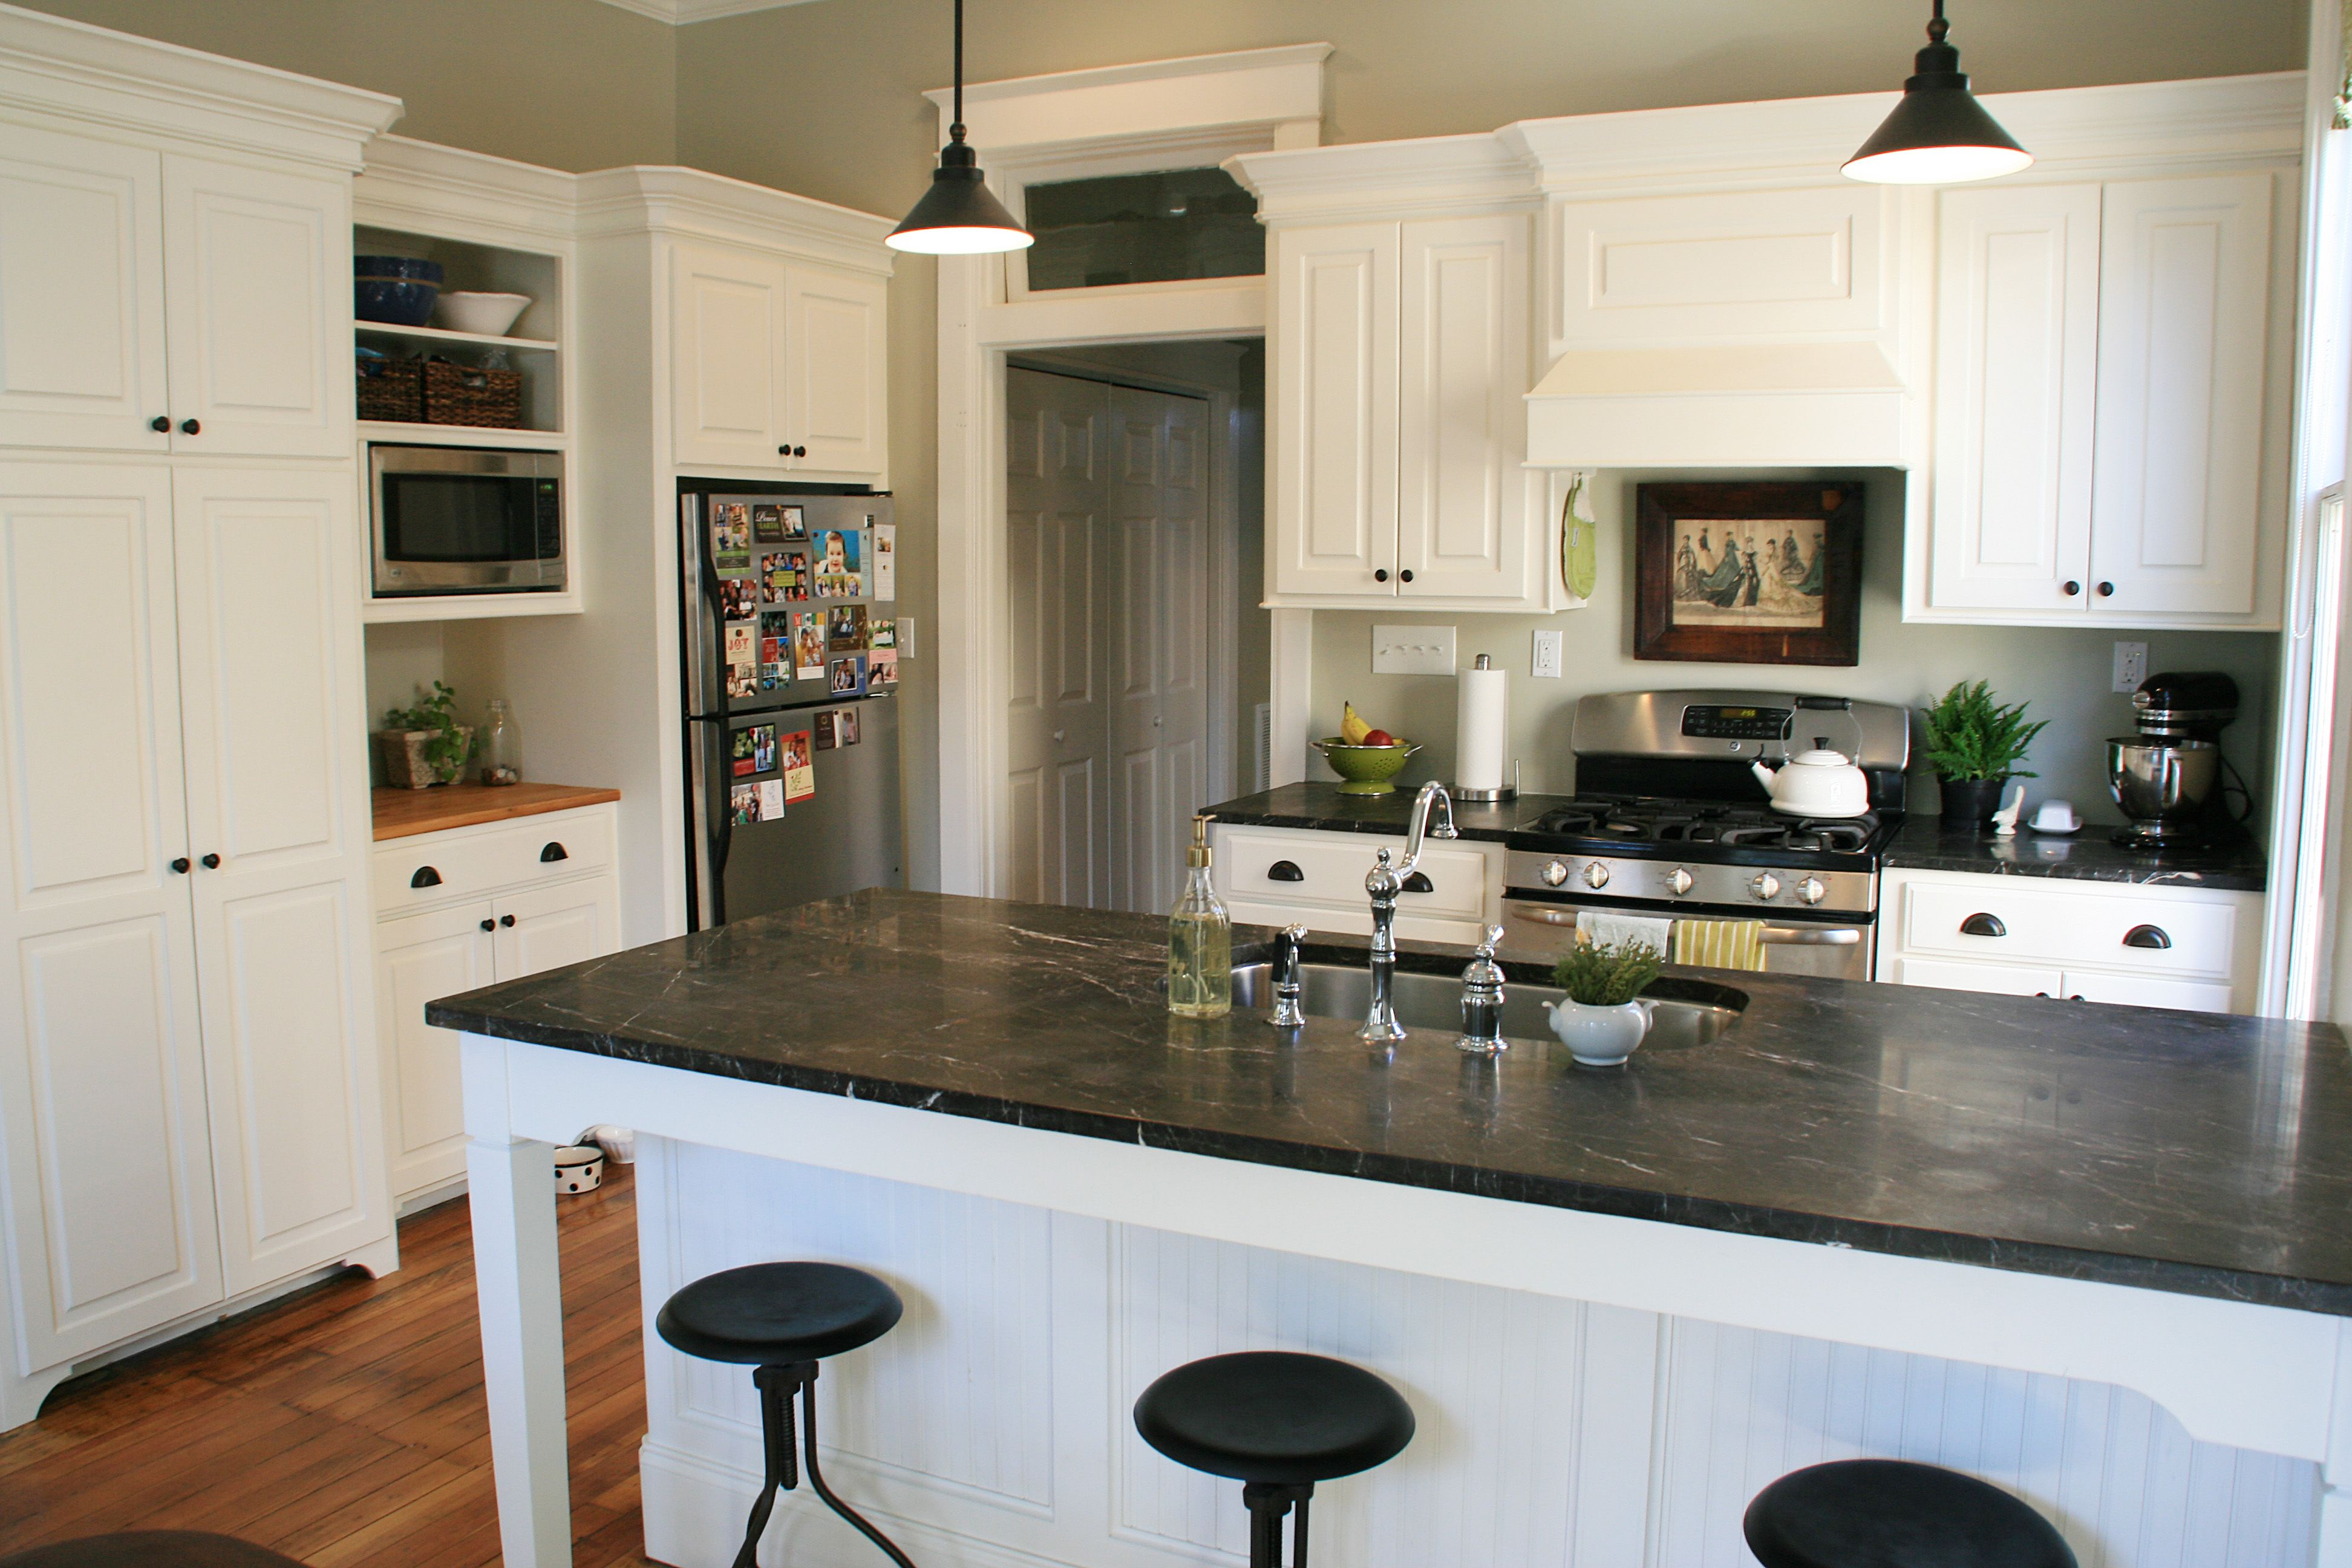 Best Small White Kitchen With Island Sink Small White 640 x 480